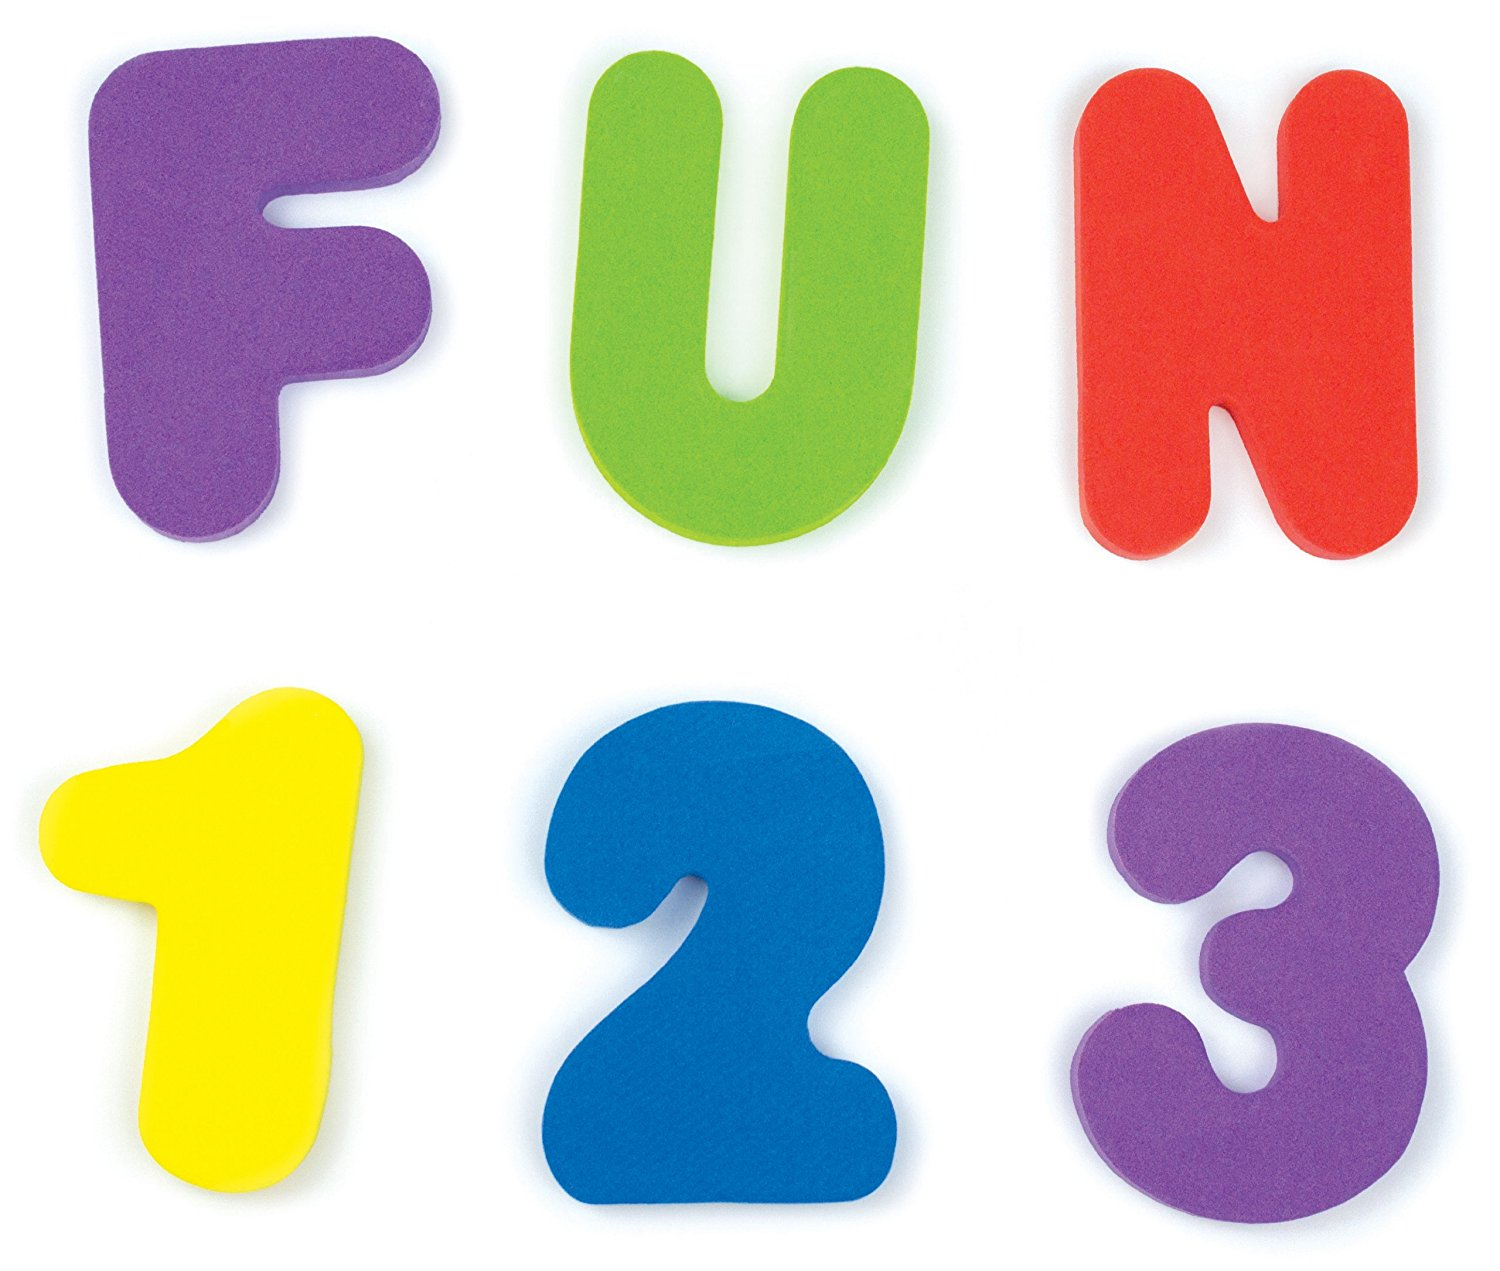 munchkin letters and numbers, baby bath toys, foam bath toys, foam letter bath toys